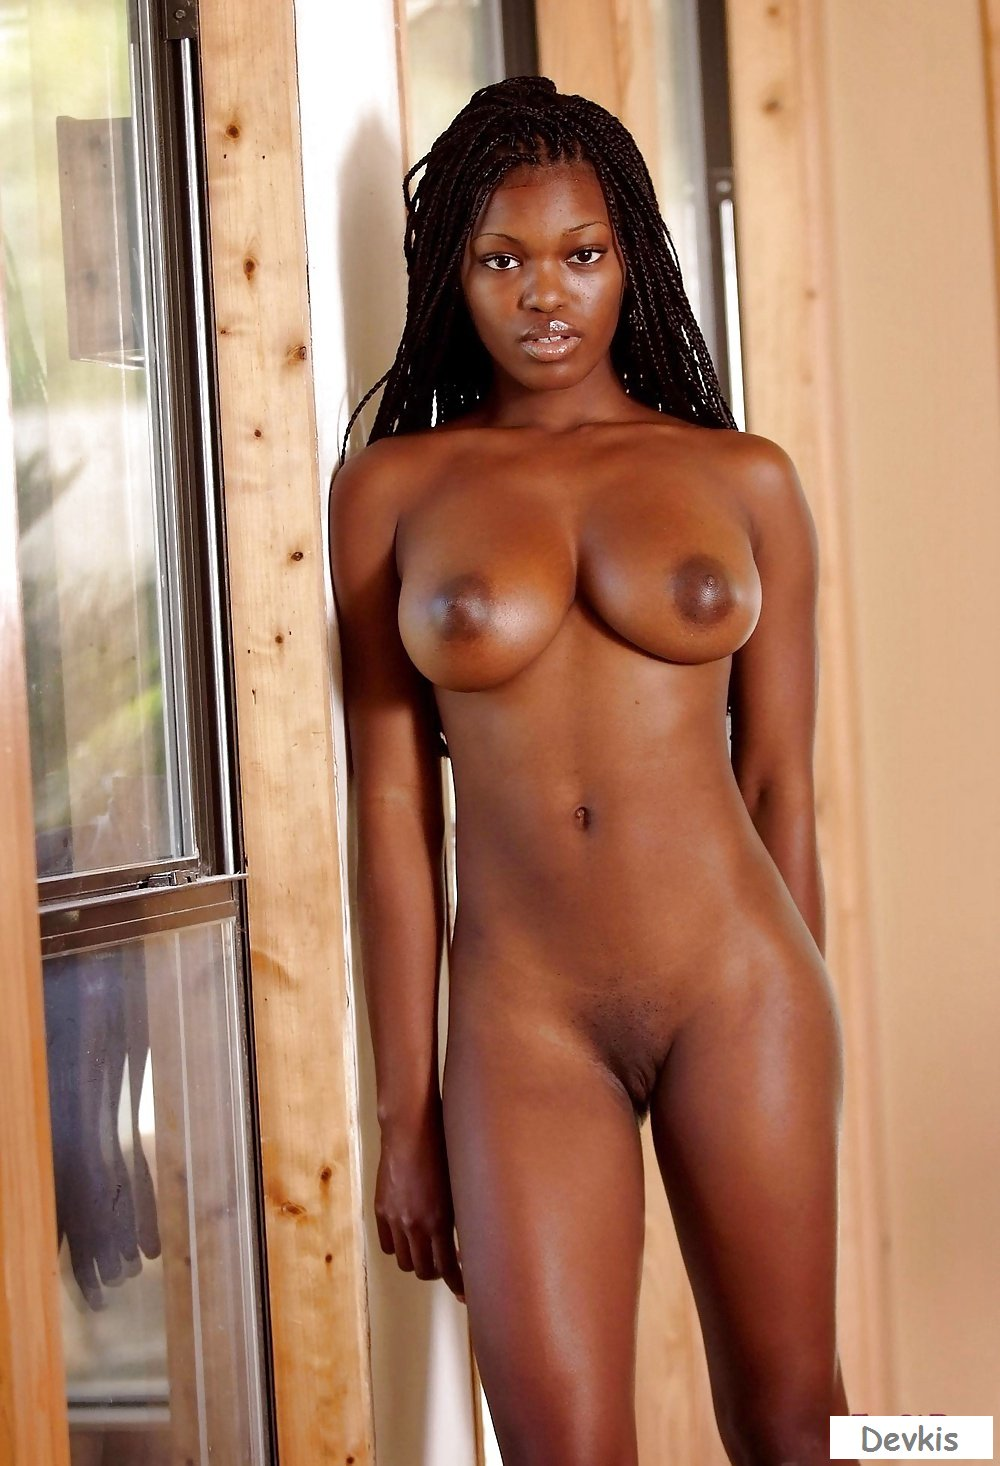 Ebony pics with hot ebony women, sexy black babes, ebony girls